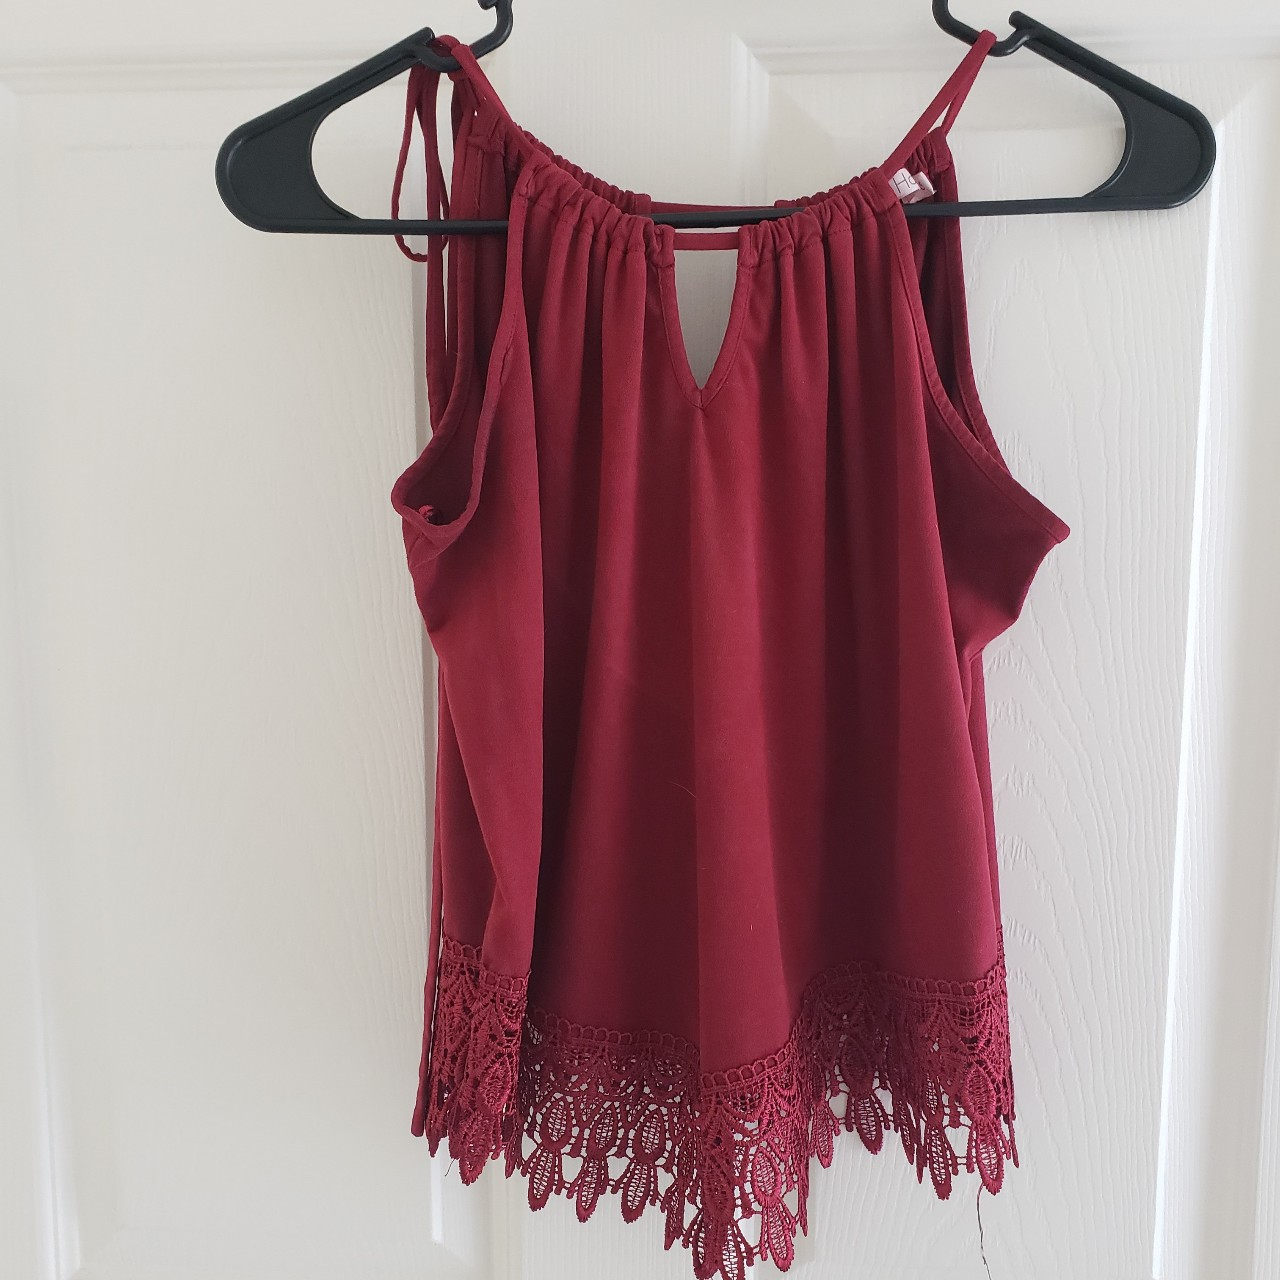 Product Image 1 - Red top that ties on